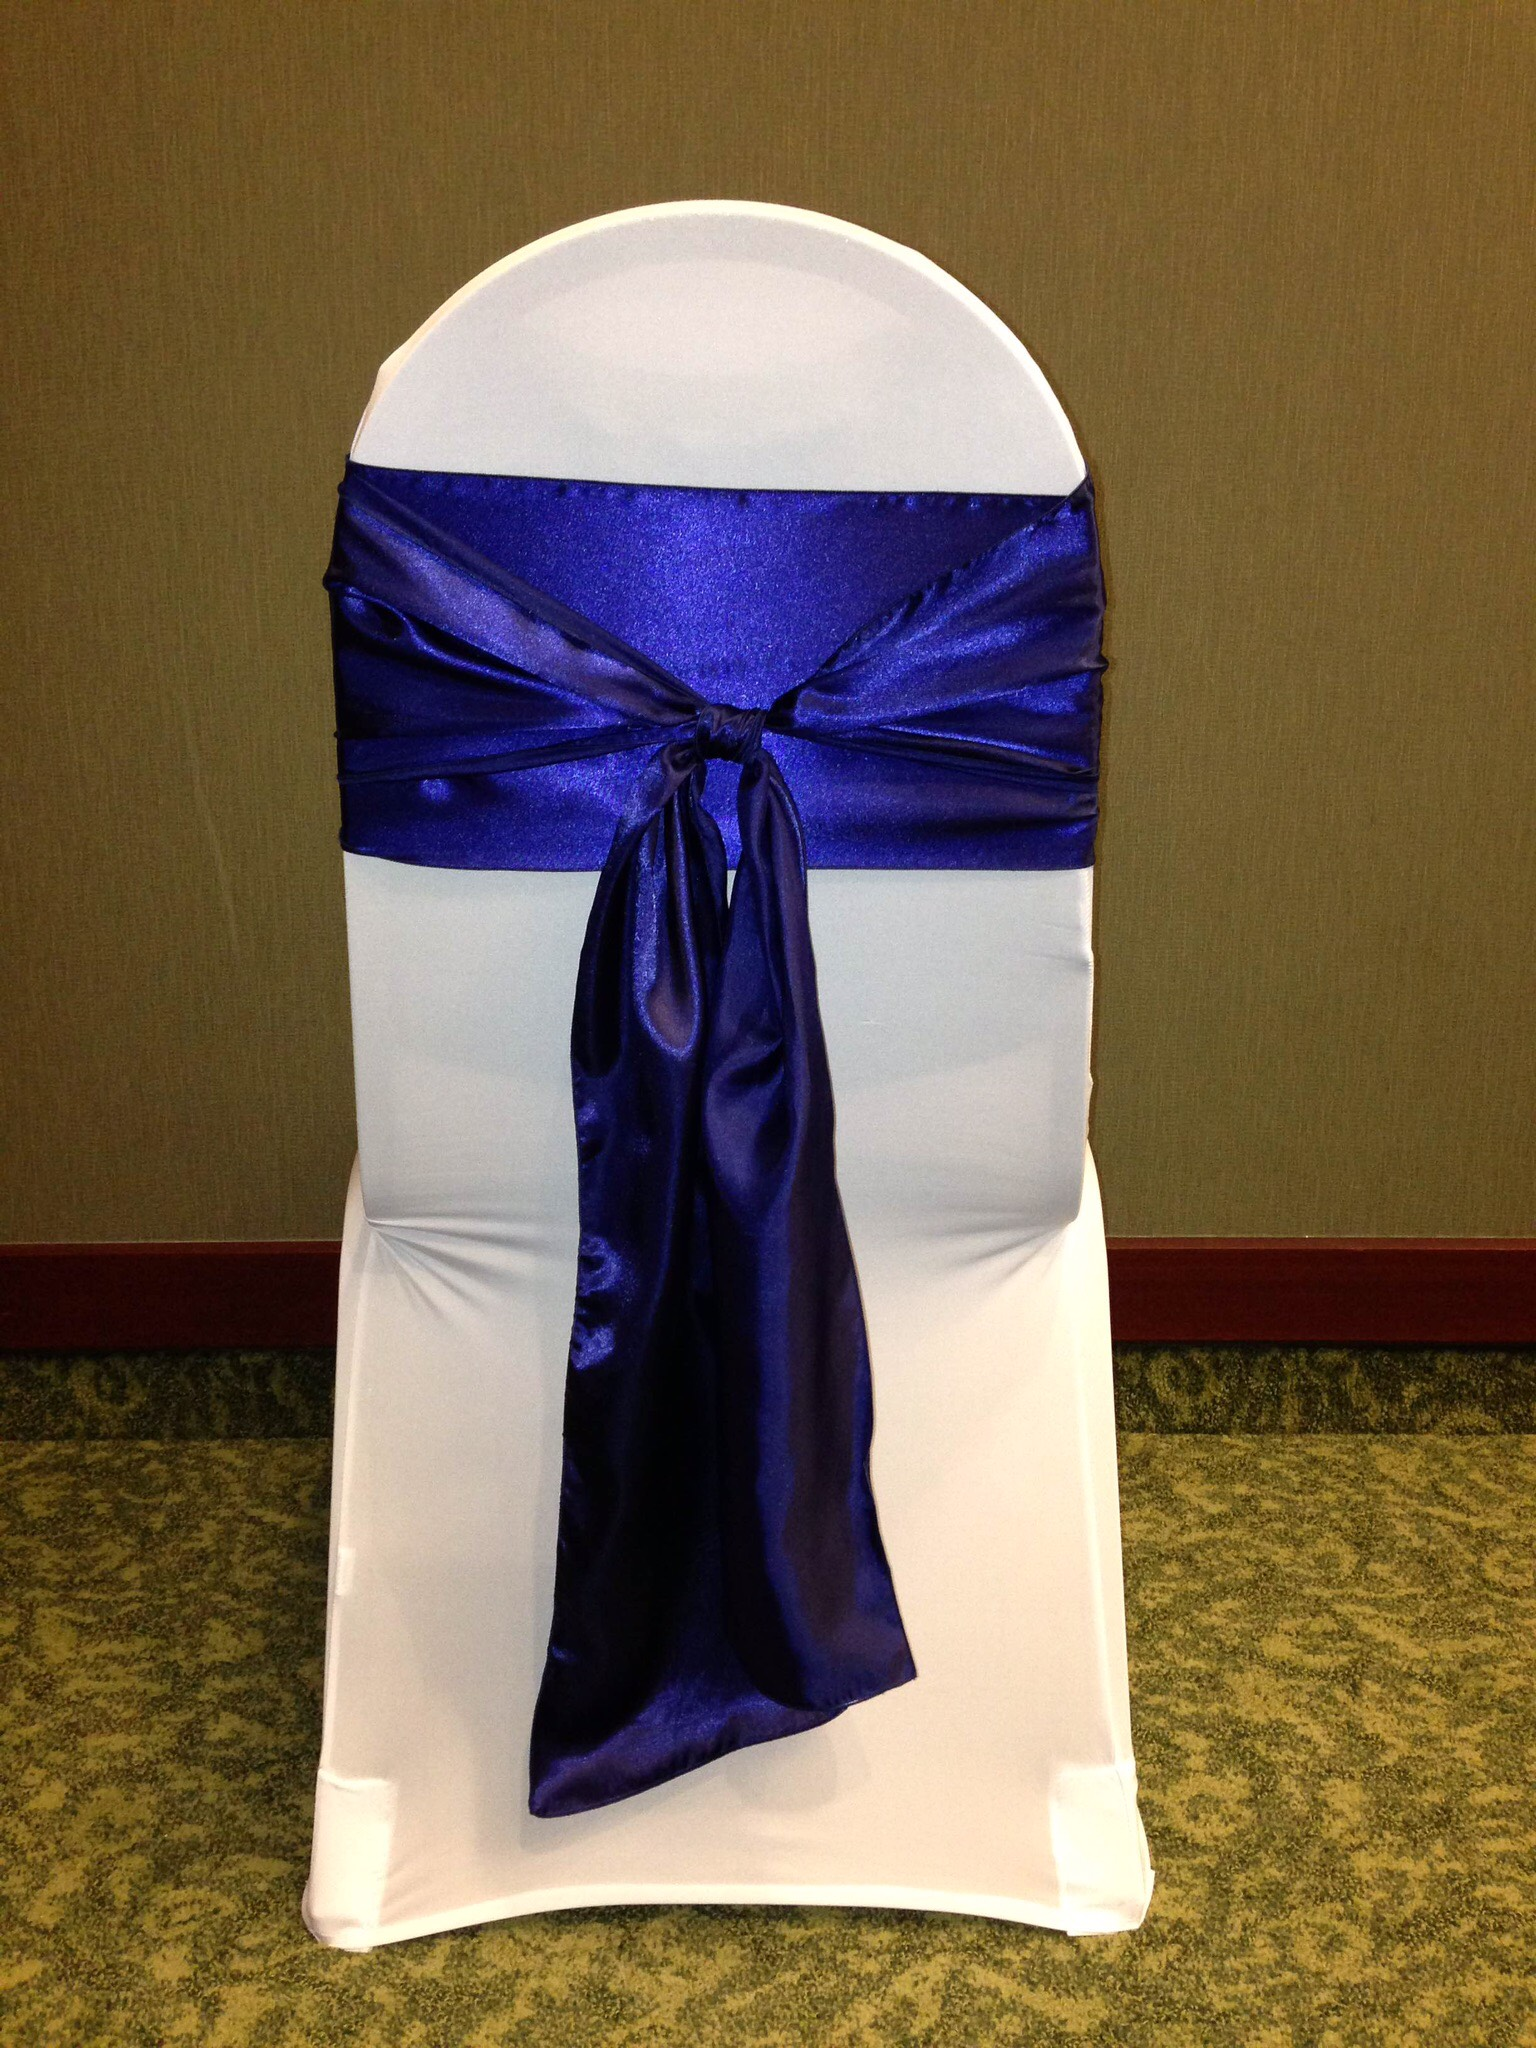 Navy sash with white chair cover